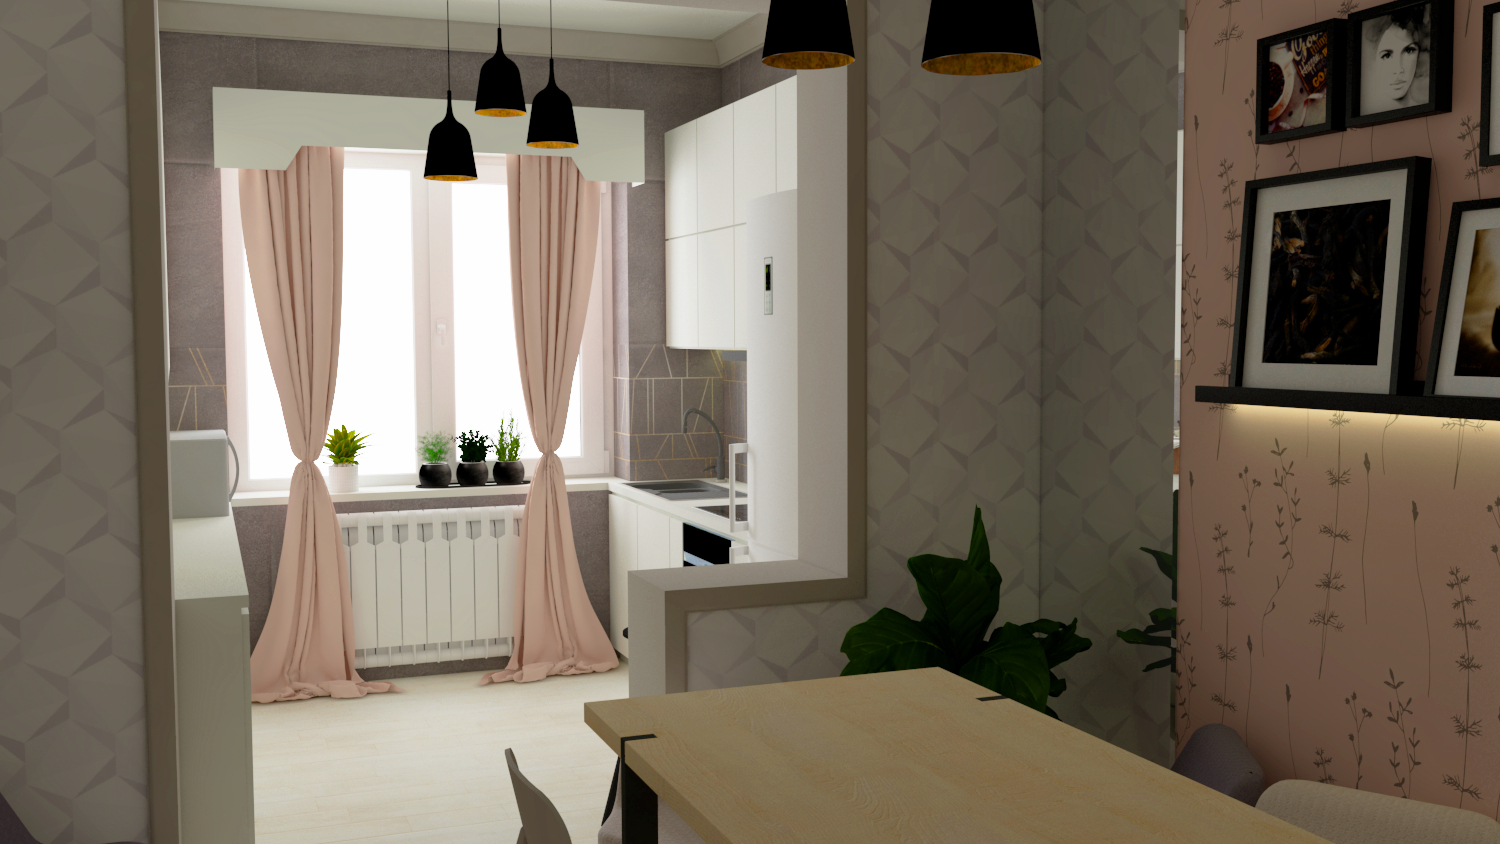 Kitchen-dining room in SketchUp vray 3.0 image